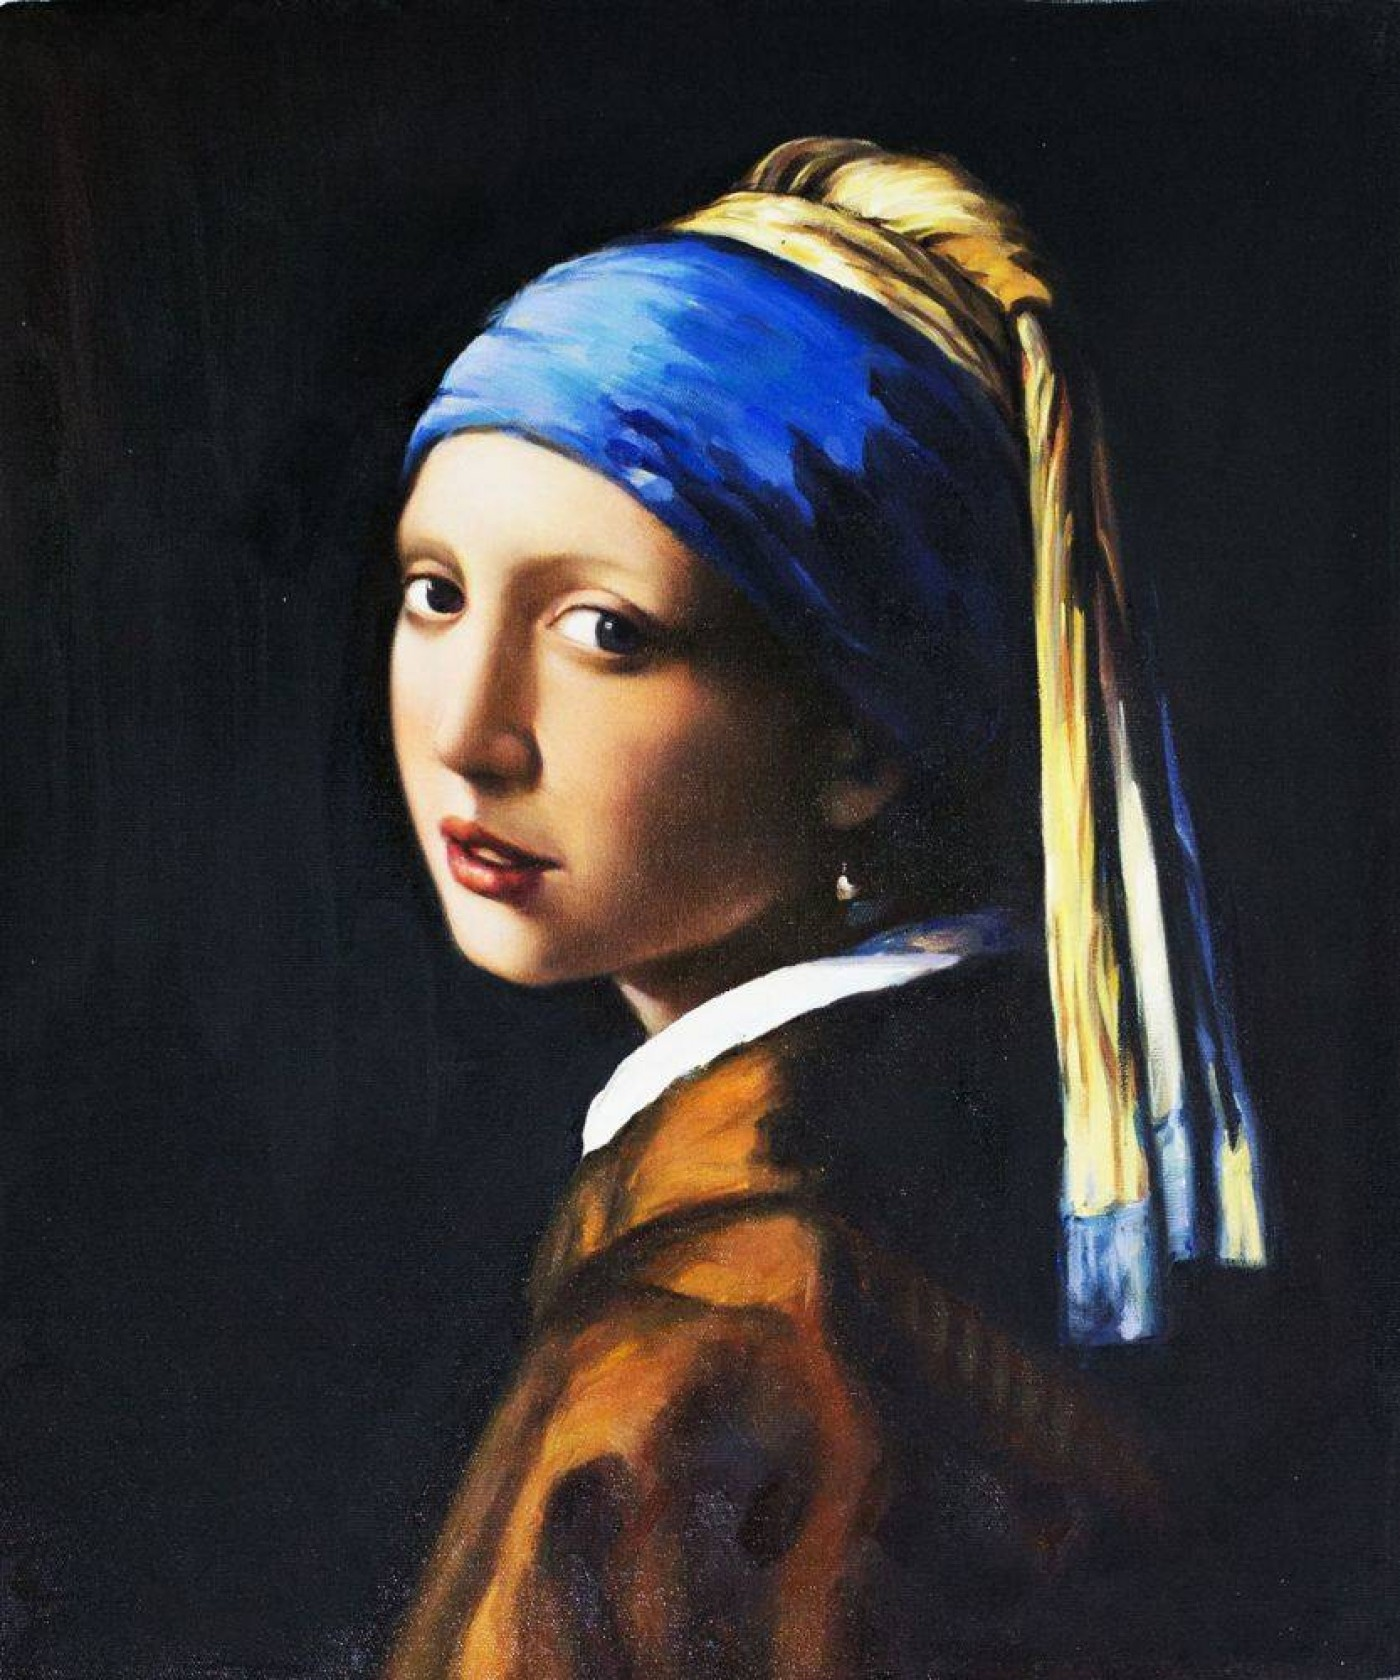 003 Girl With Pearl Earring Essay Outstanding A The Movie Film Review 1400